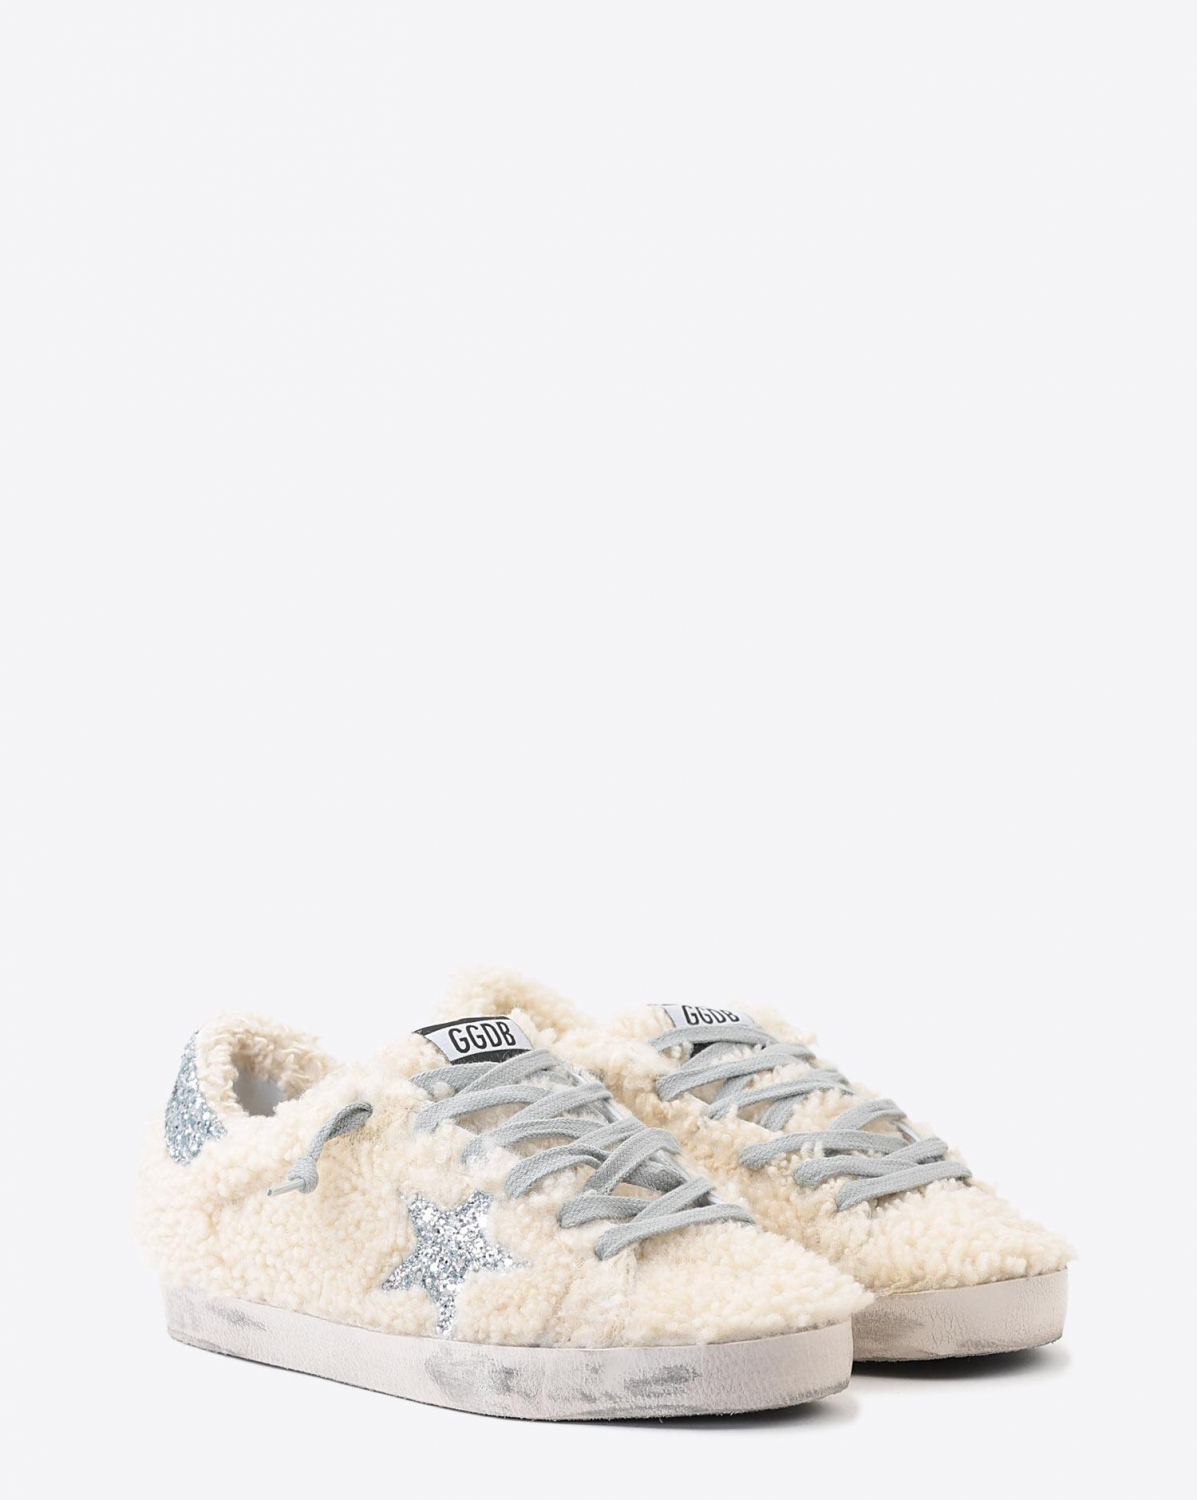 Golden Goose Woman Pré-Collection Sneakers Superstar - Cream Shearling - Silver Glitter Star